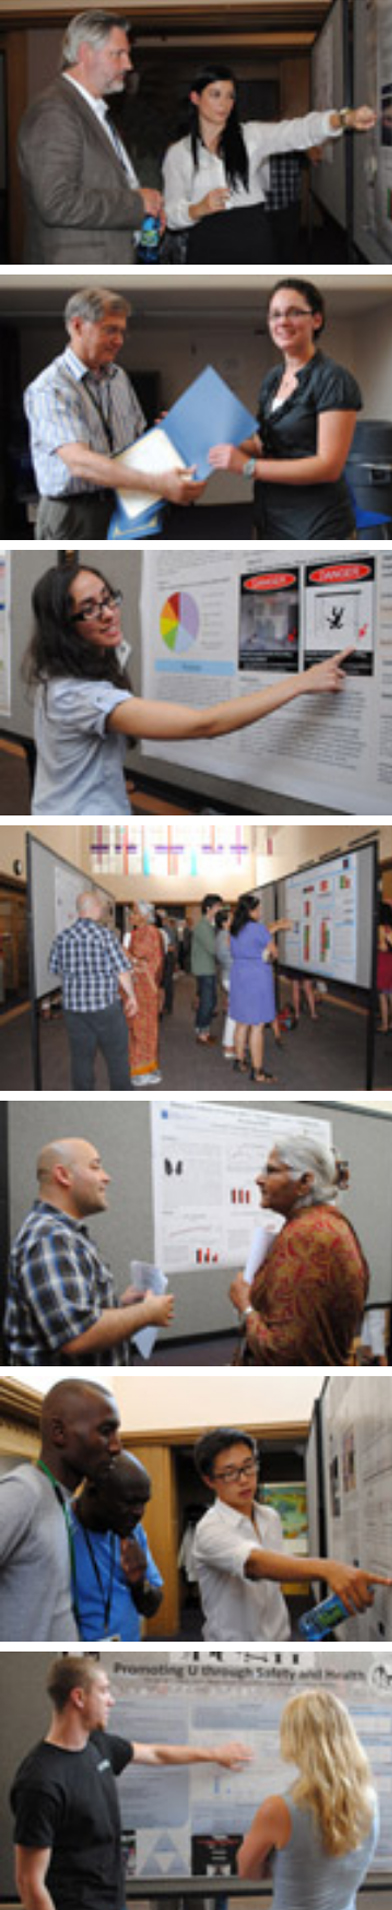 Images from the 2012 summer intern poster session where the interns presented their research in poster form and explained their research to the Institute's faculty and staff